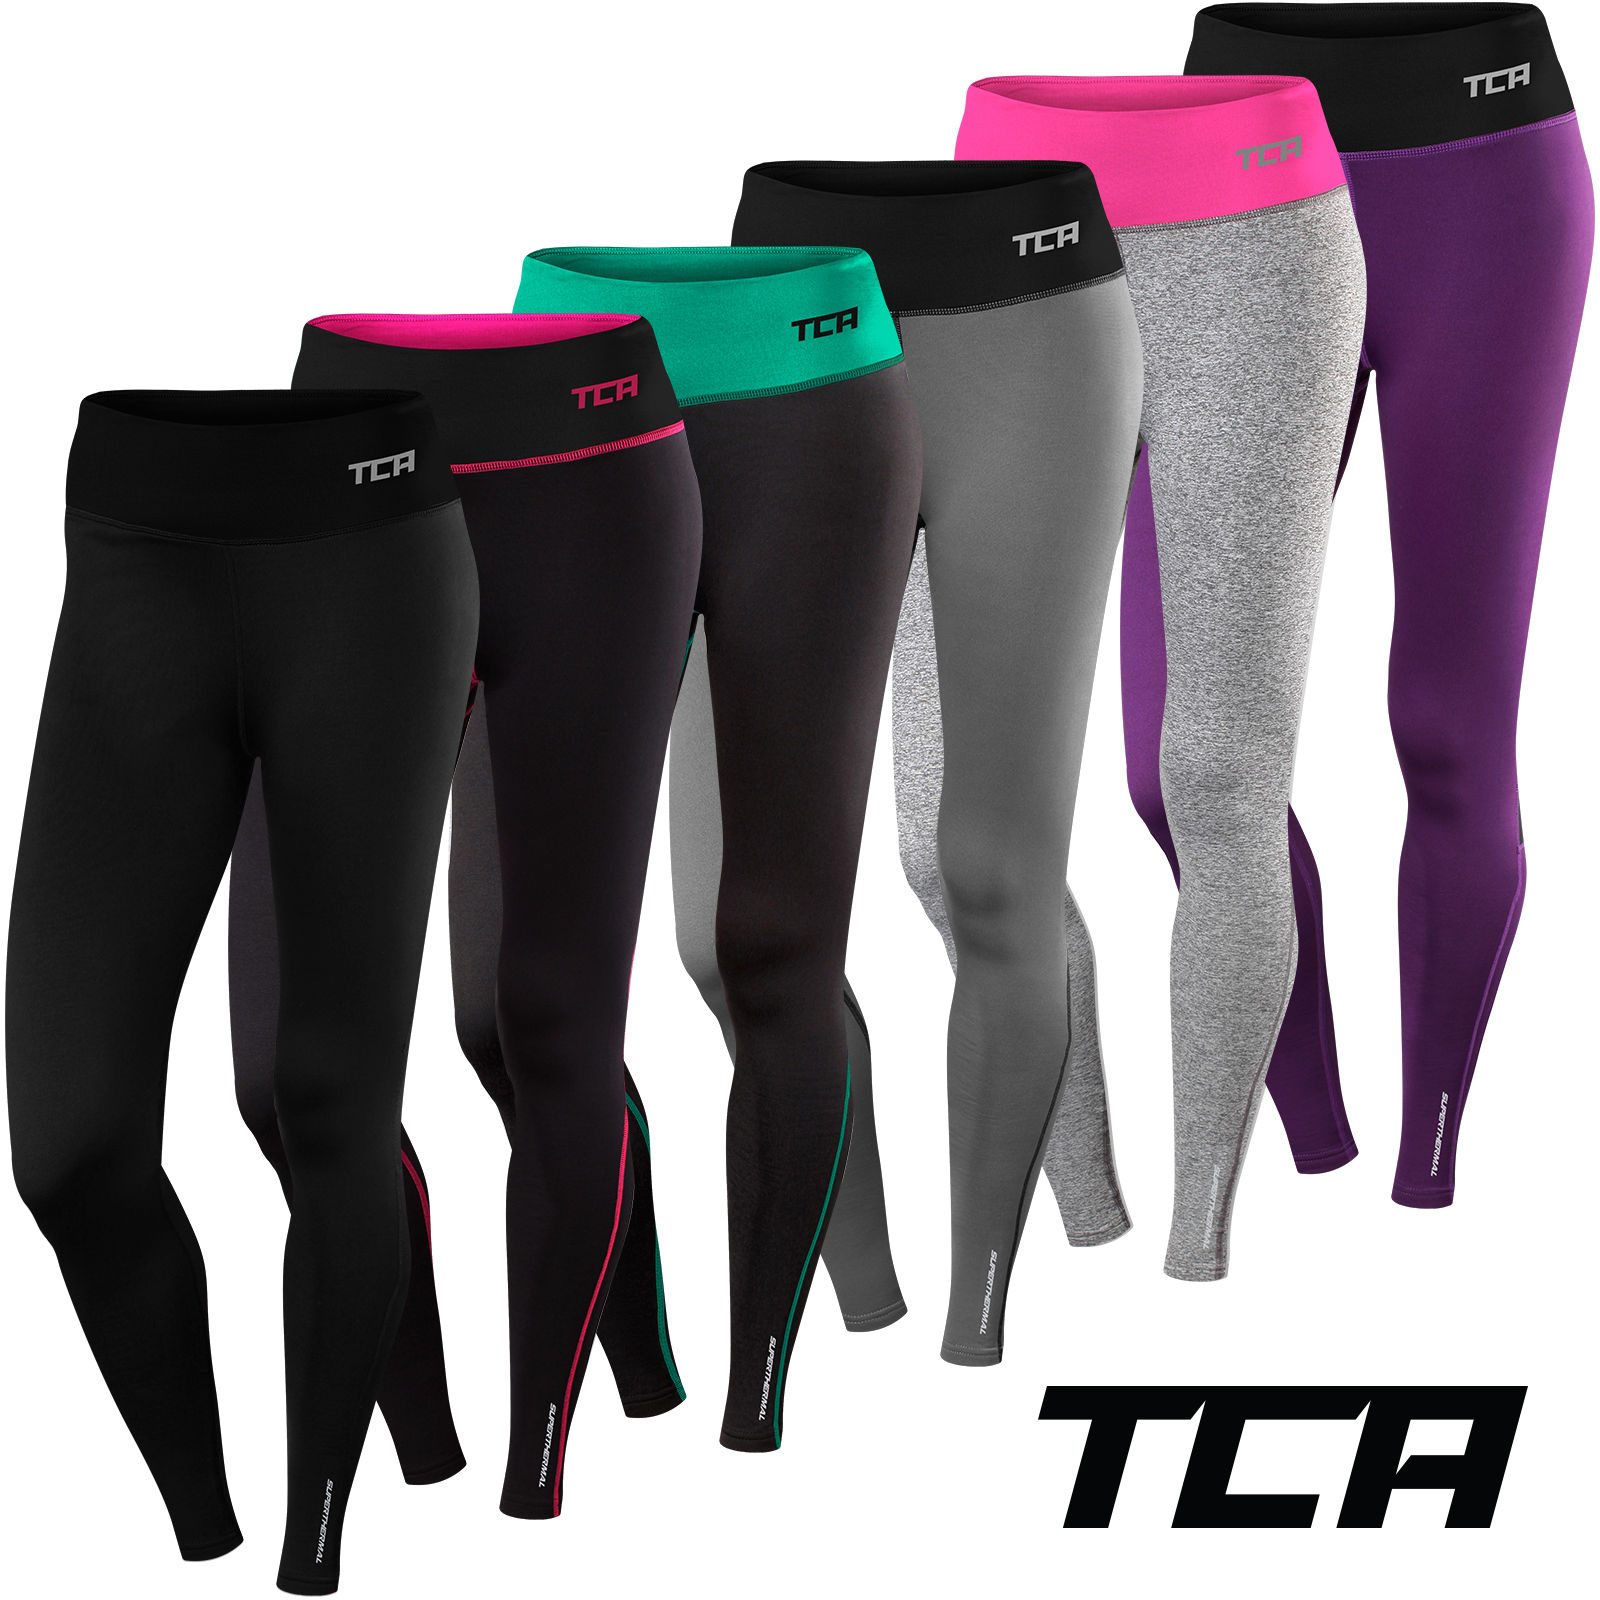 TCA Womens Thermal Running Tights Gym Workout Fitness Warm Bottoms